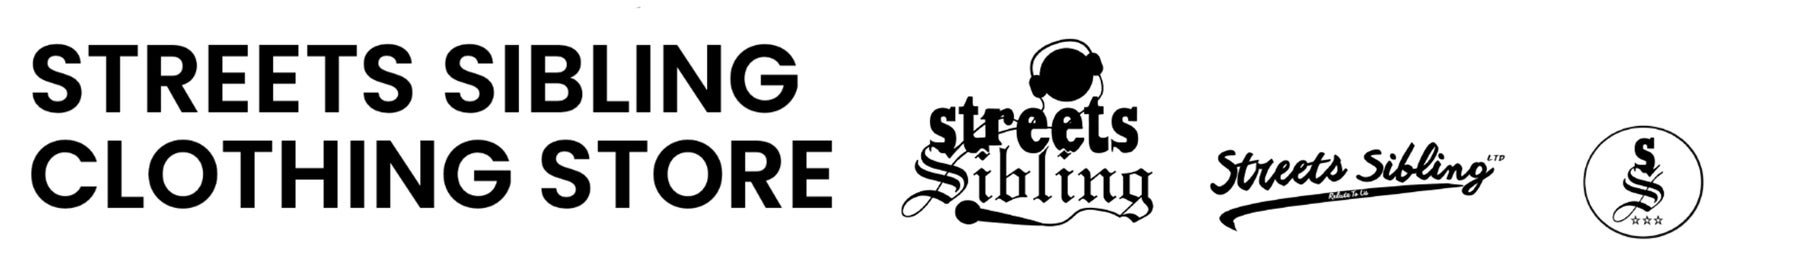 Streets Sibling Clothing Store Home